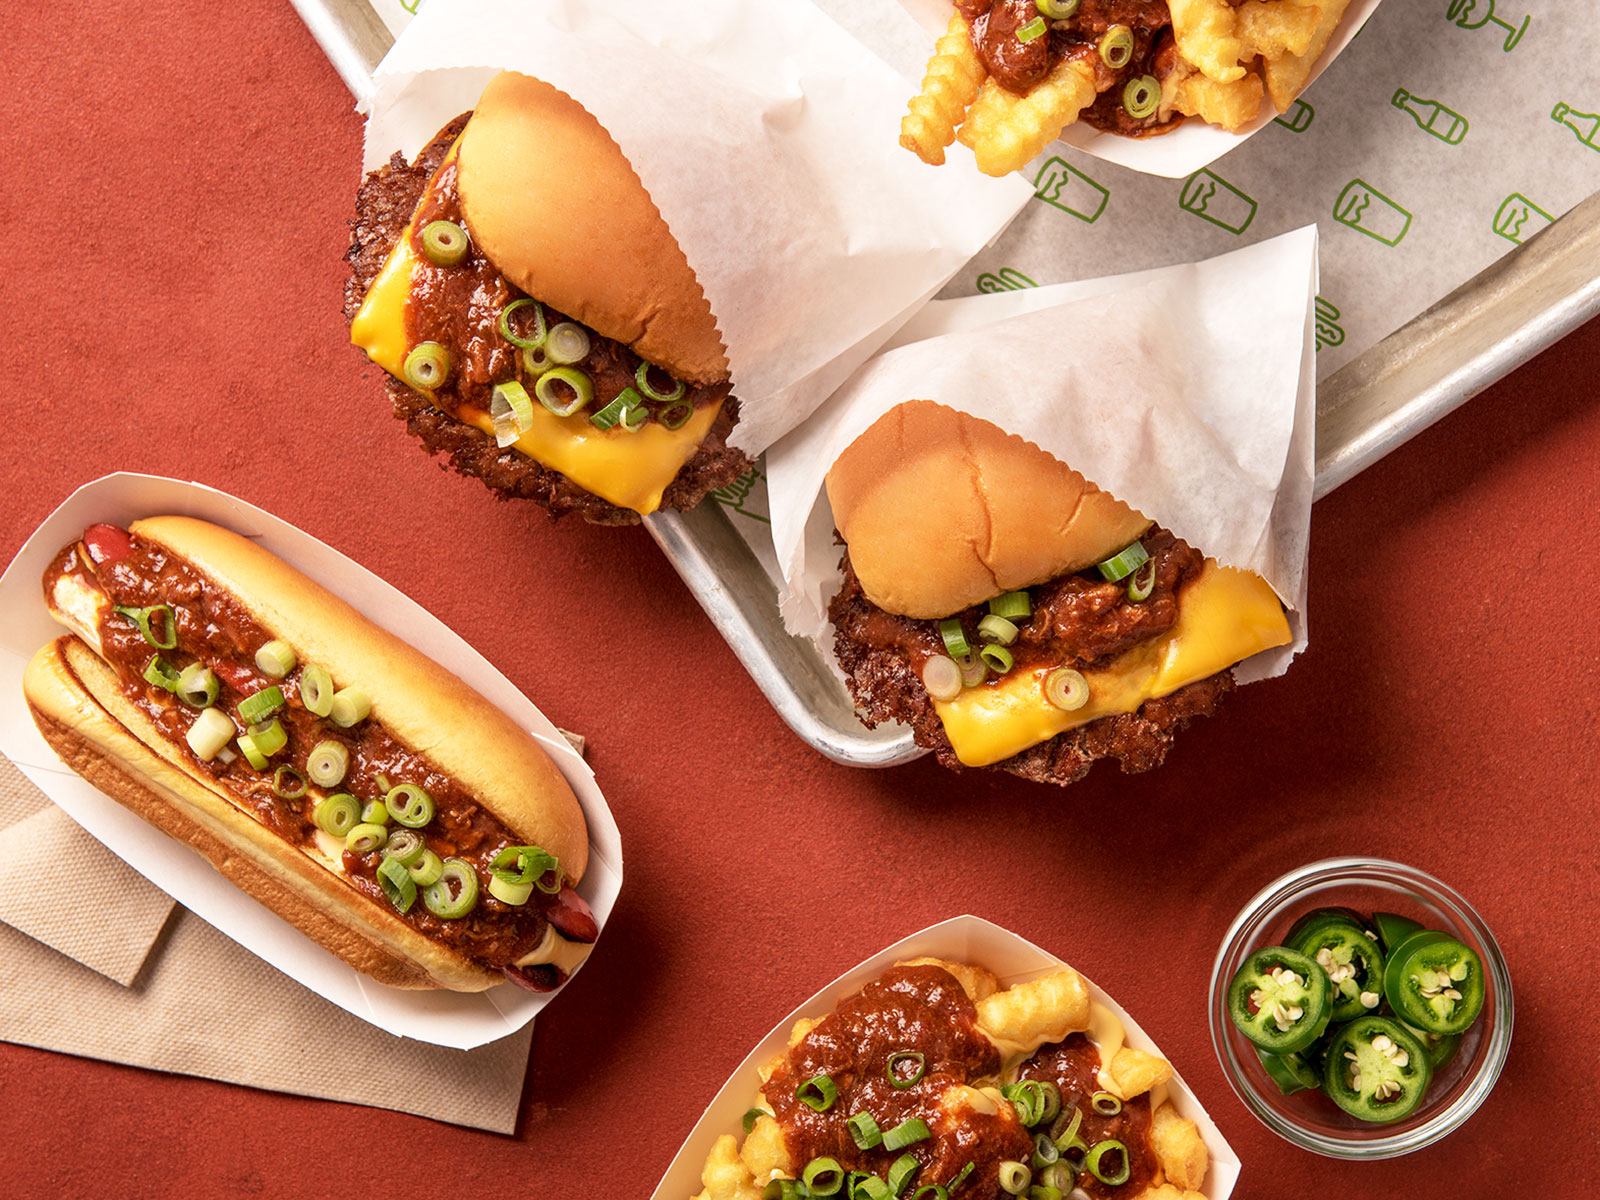 Shake Shack Is Adding Chili to Its Menu Just in Time for Winter